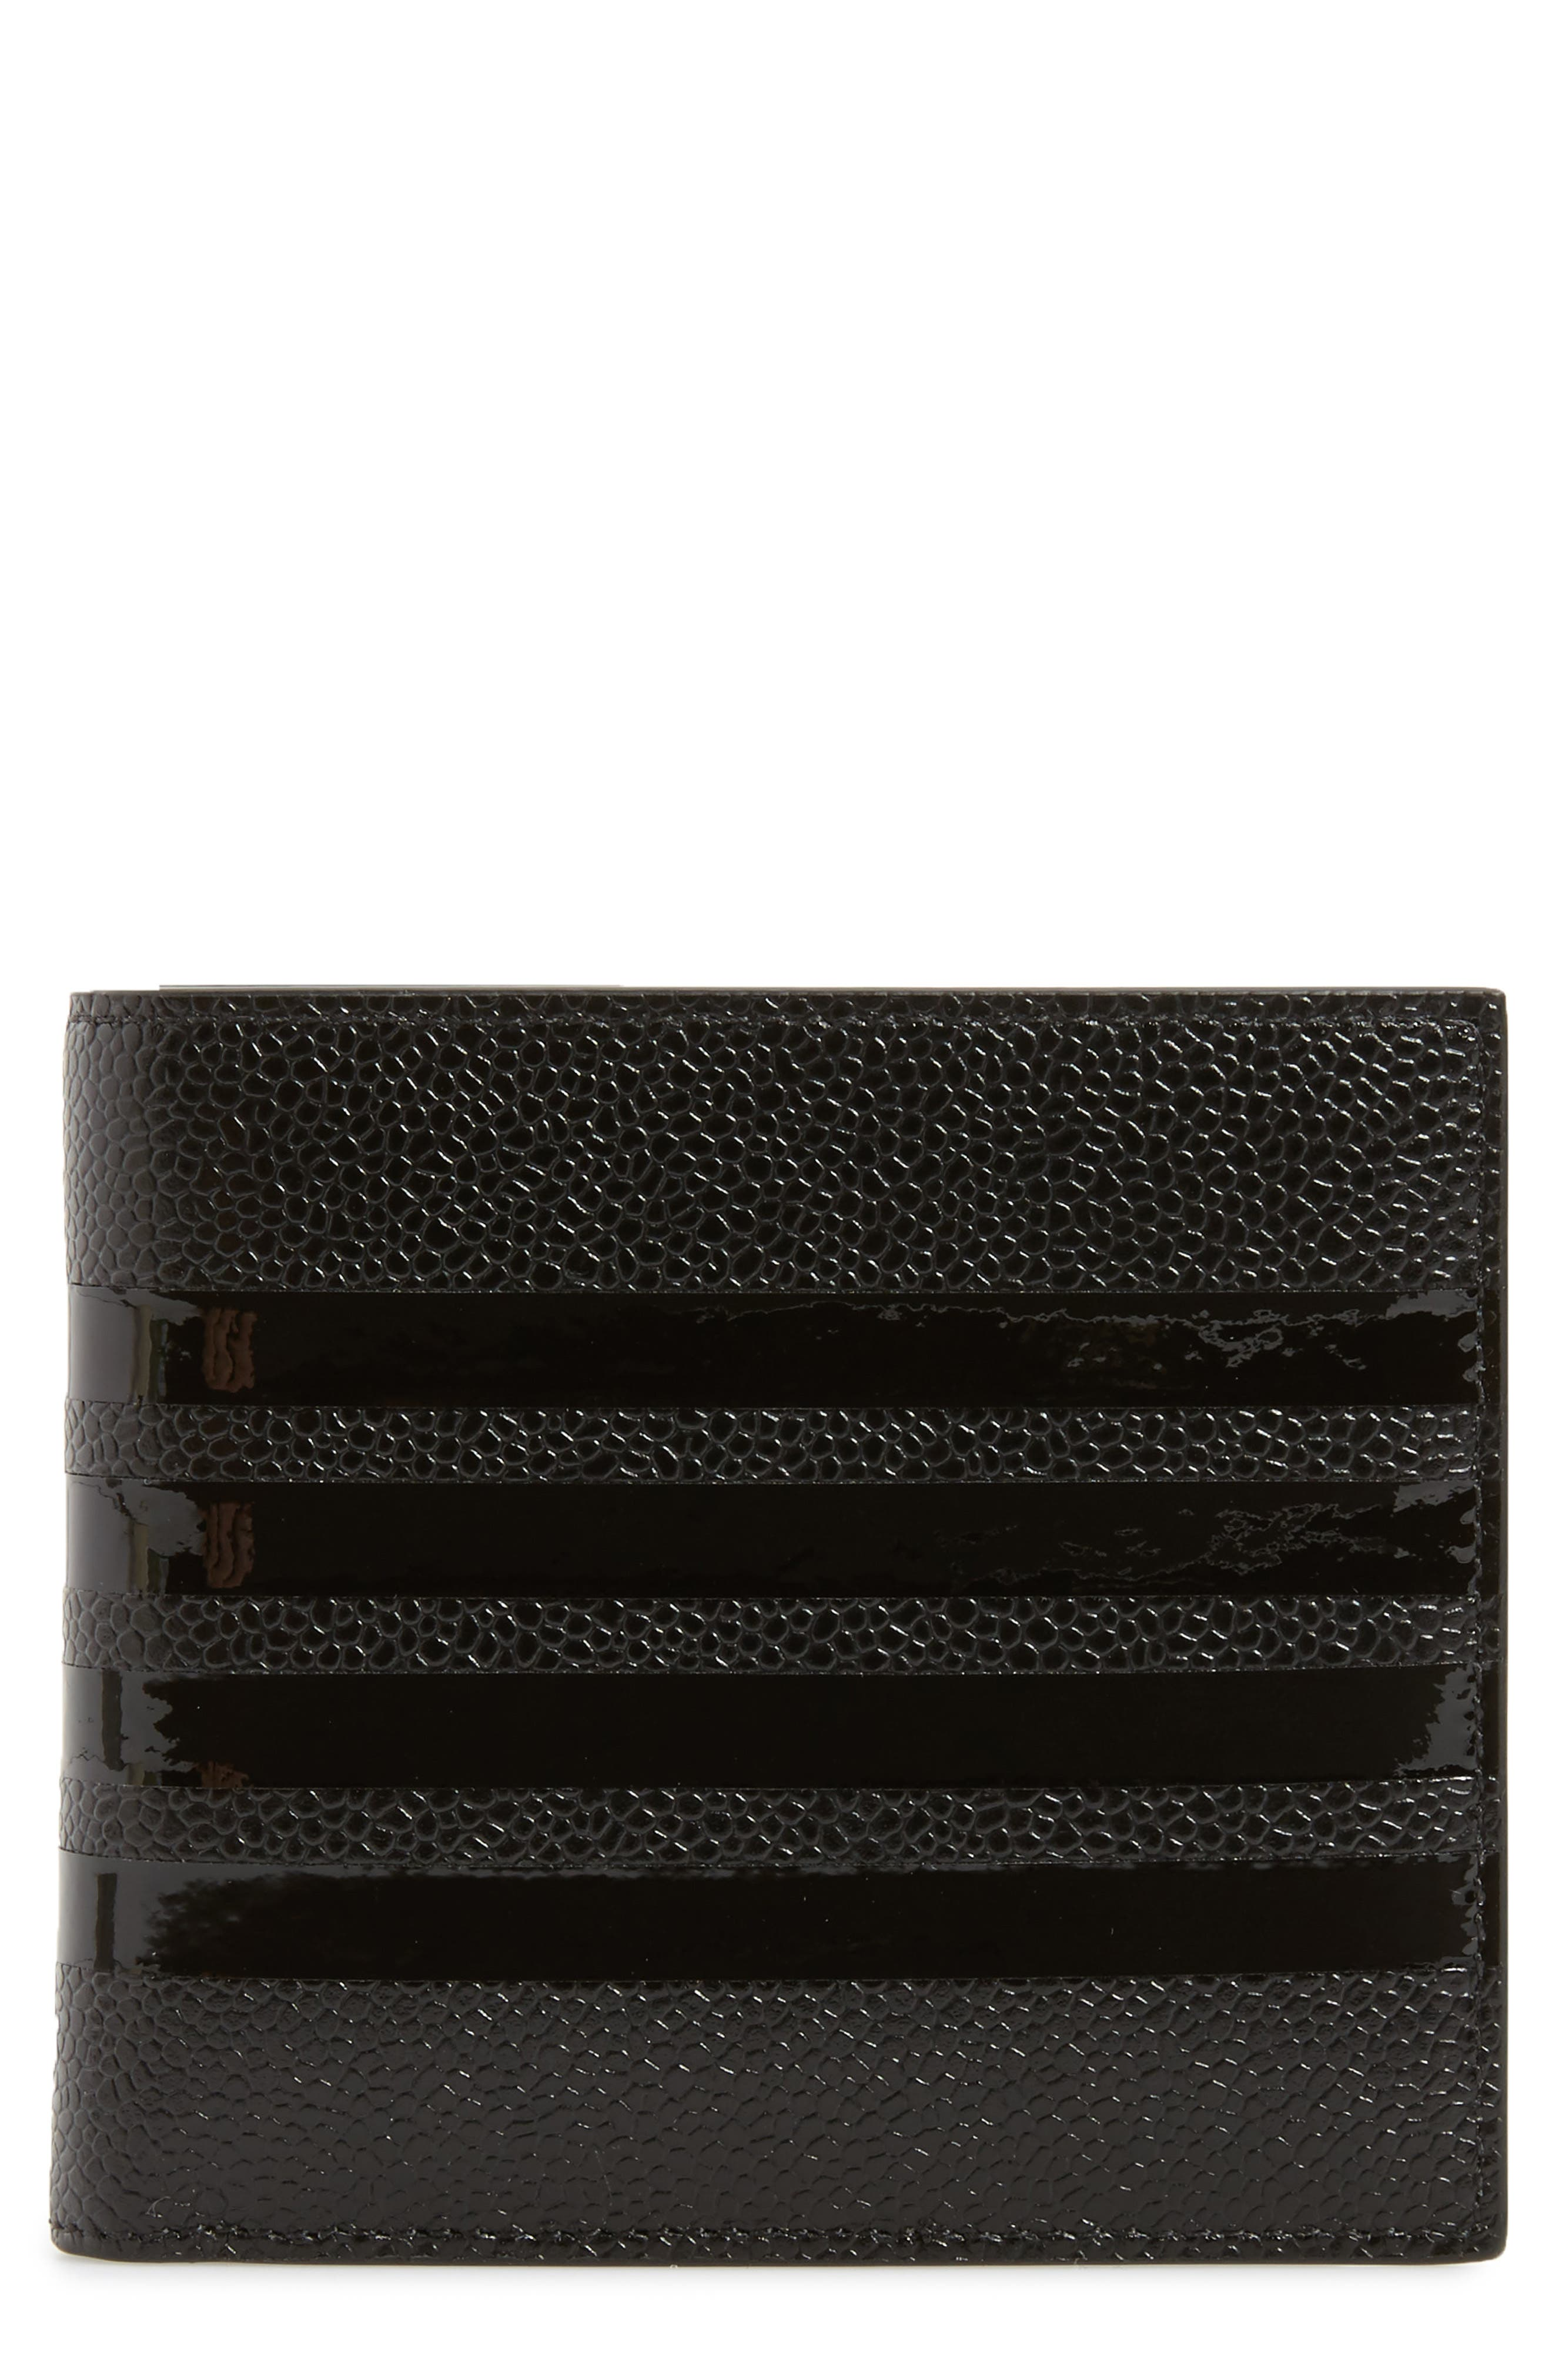 THOM BROWNE Patent Leather Bifold Wallet, Main, color, 001